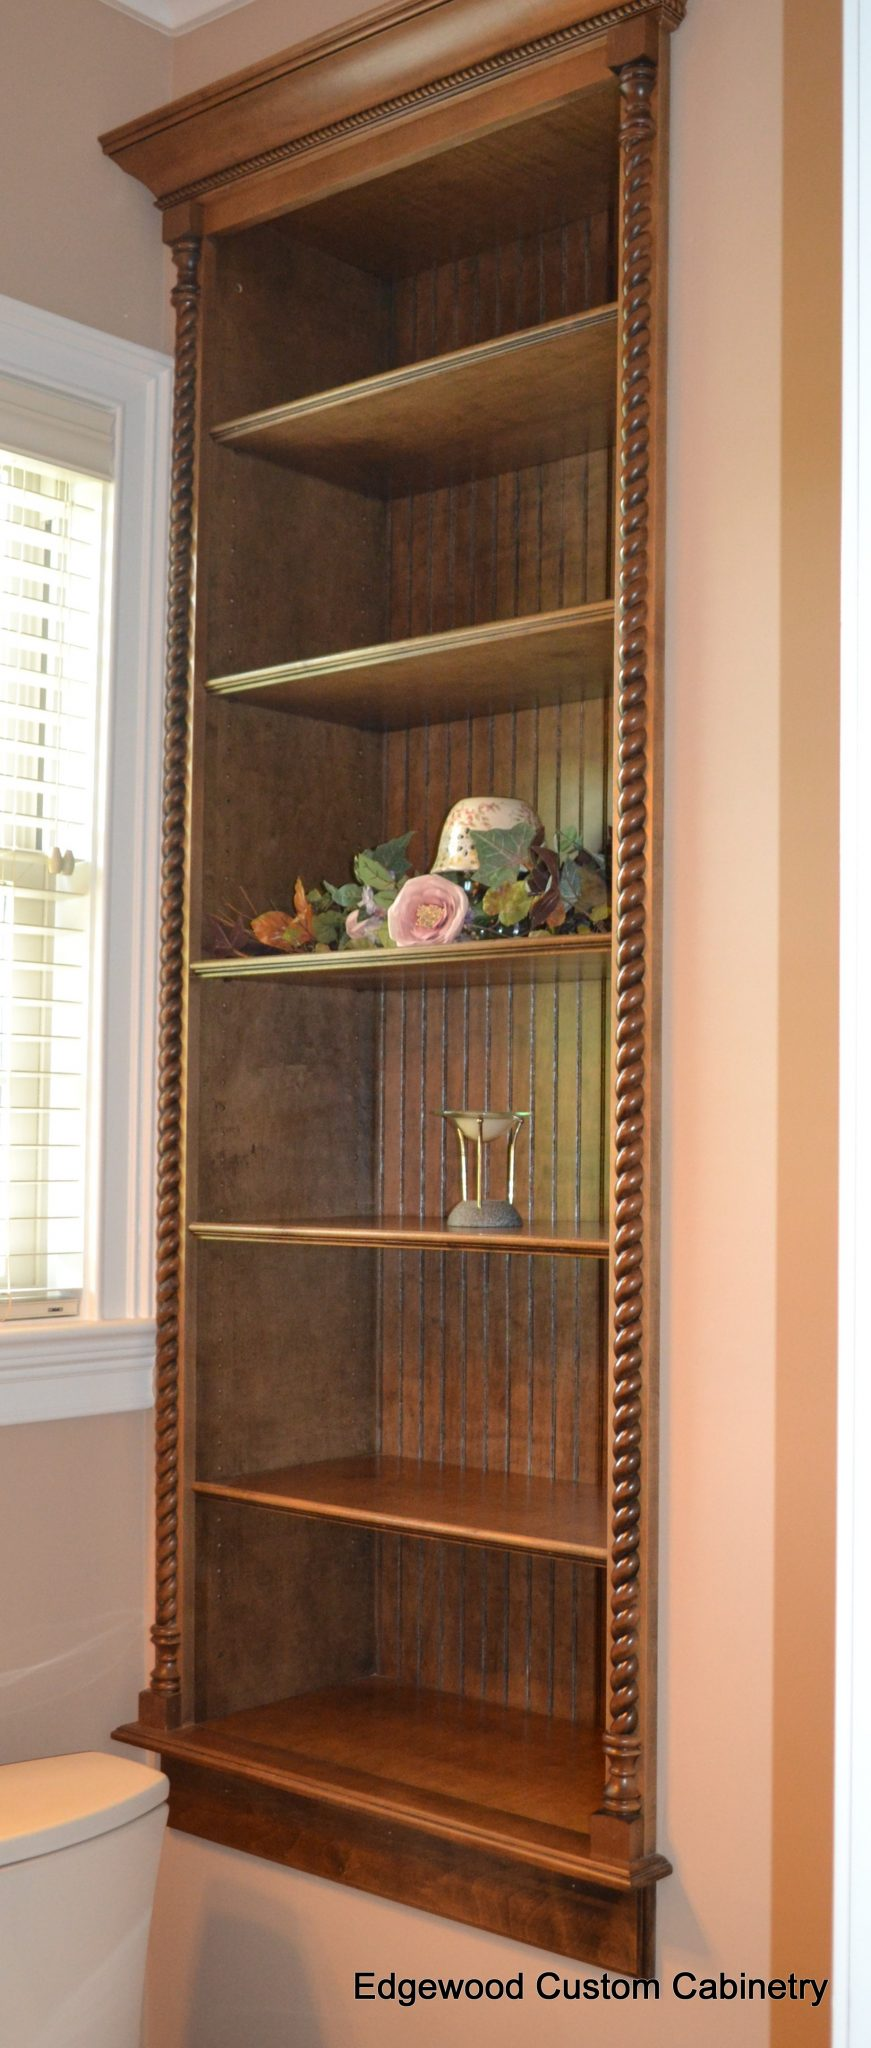 Cabinet Makers Durham Nc Cabinet Services Edgewood Cabinetry